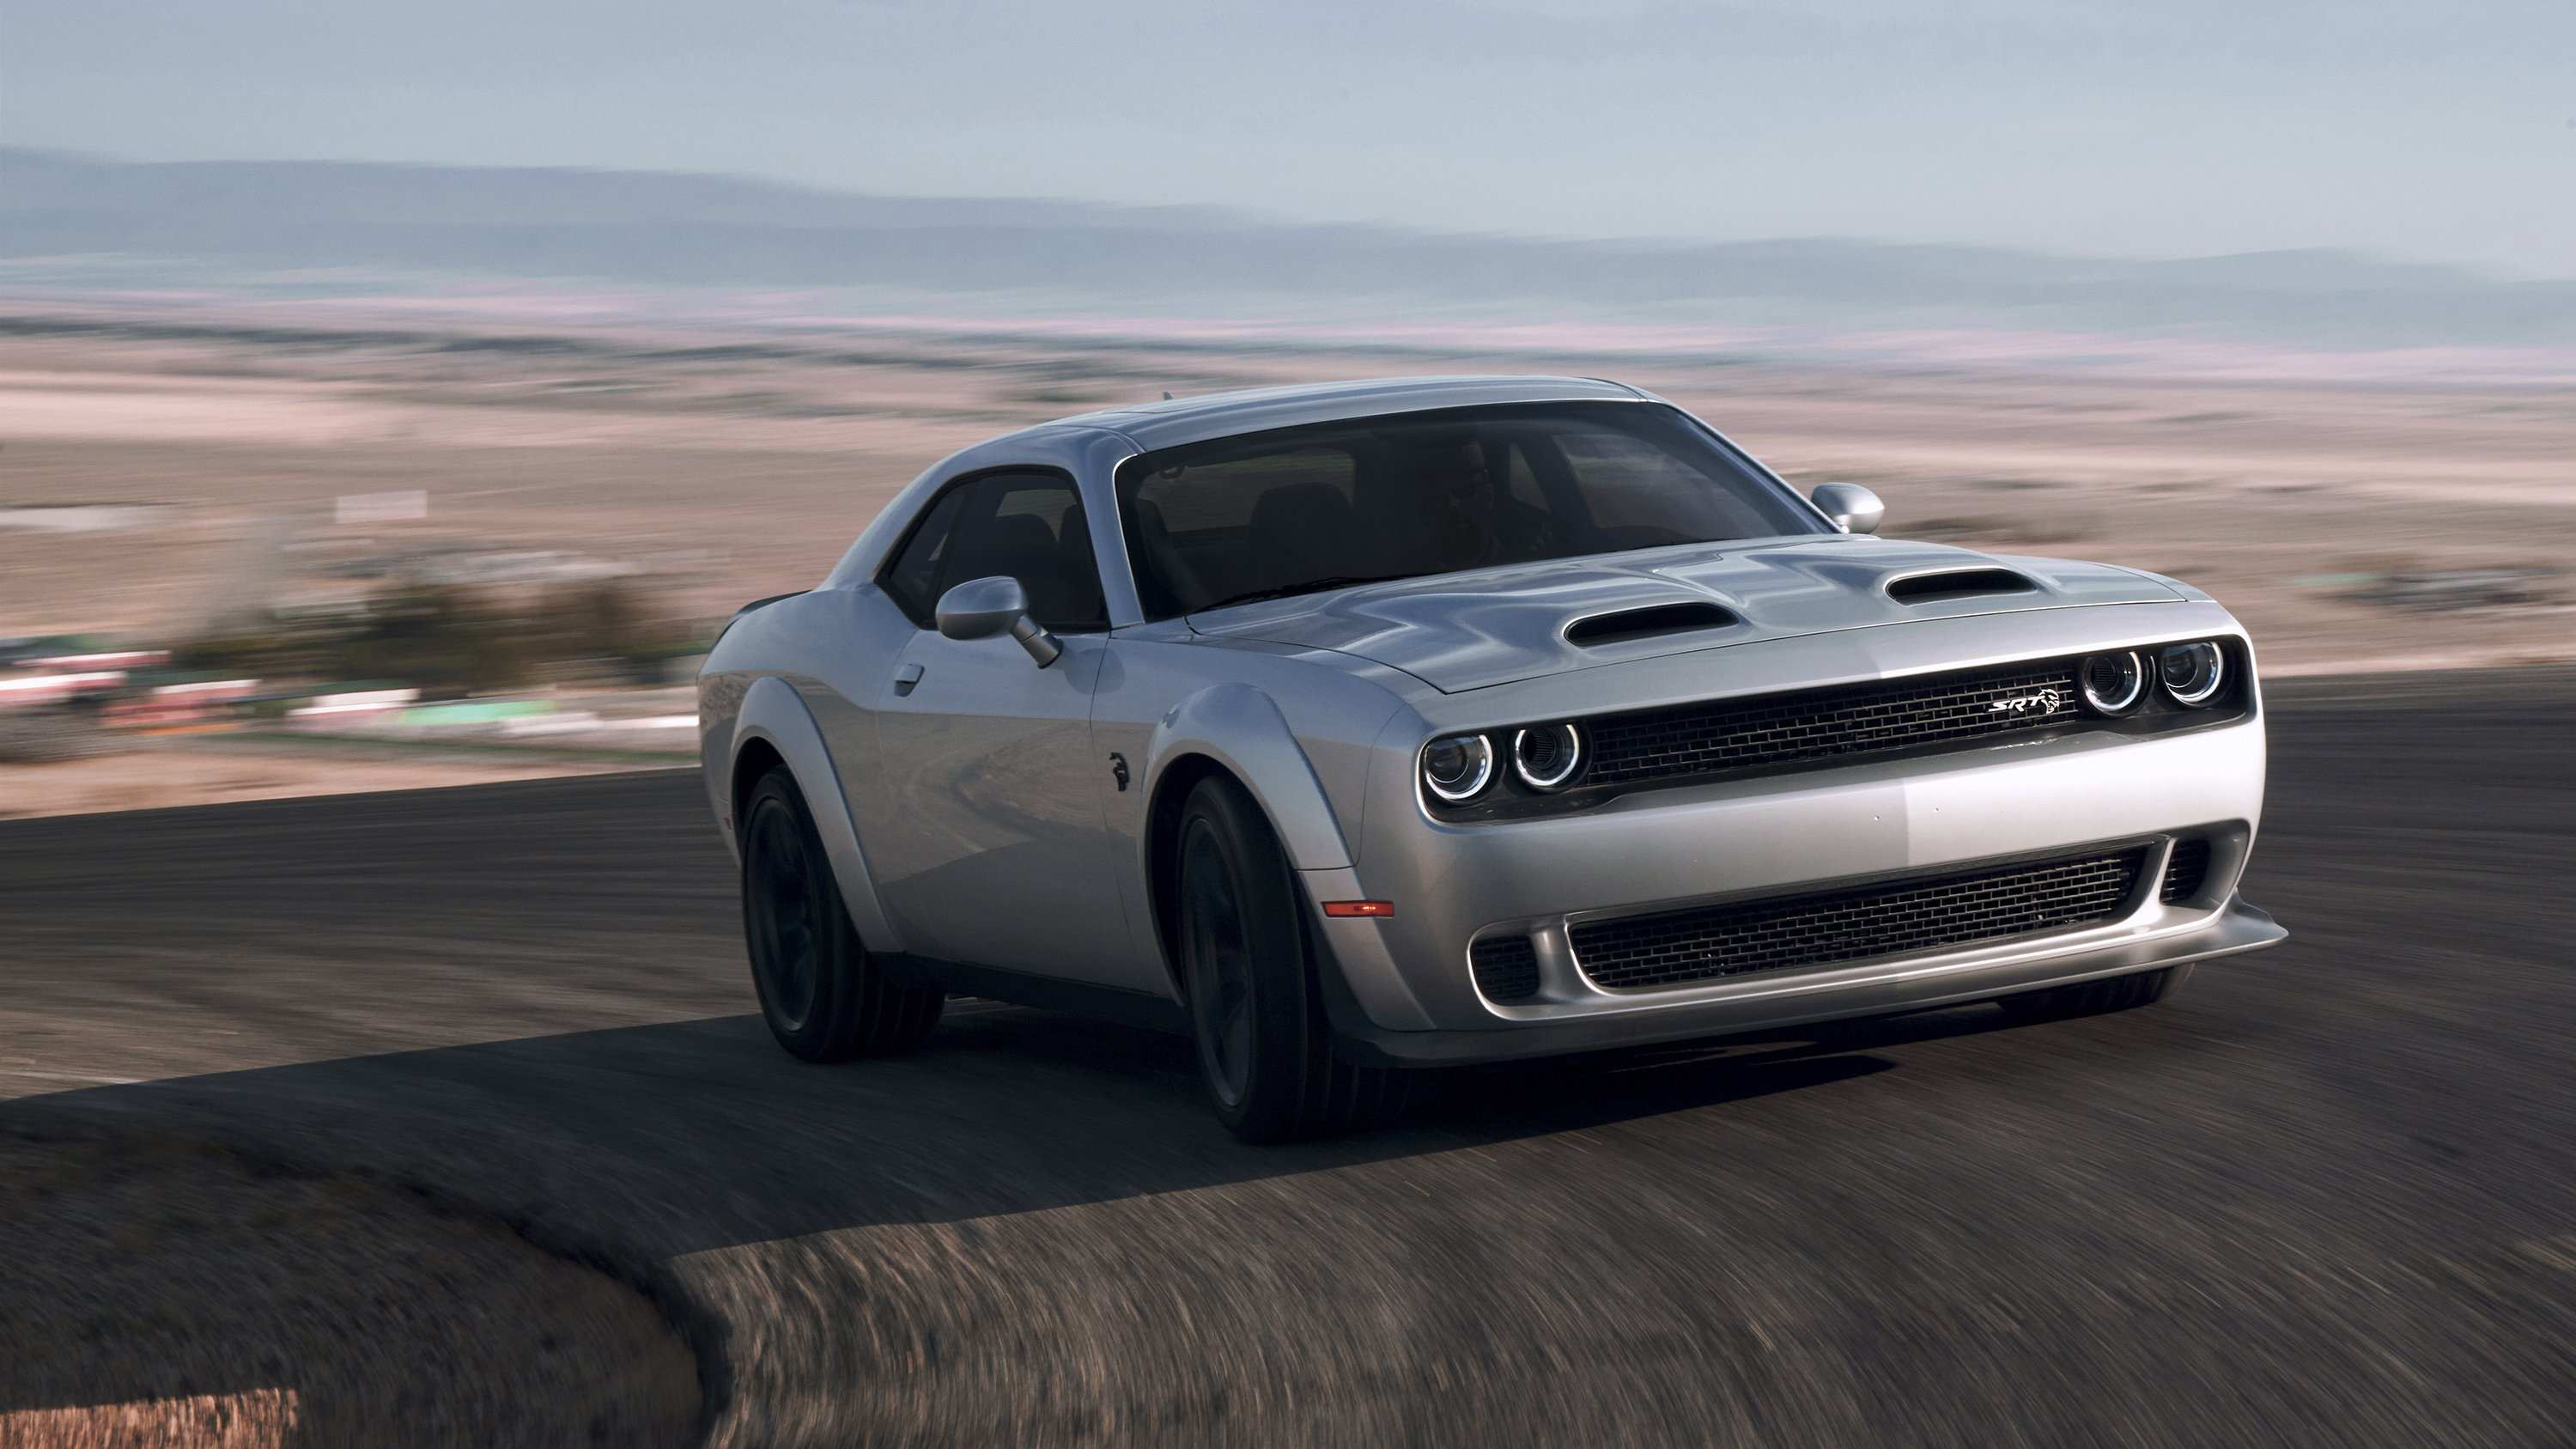 36 Best 2020 Dodge Lineup Images